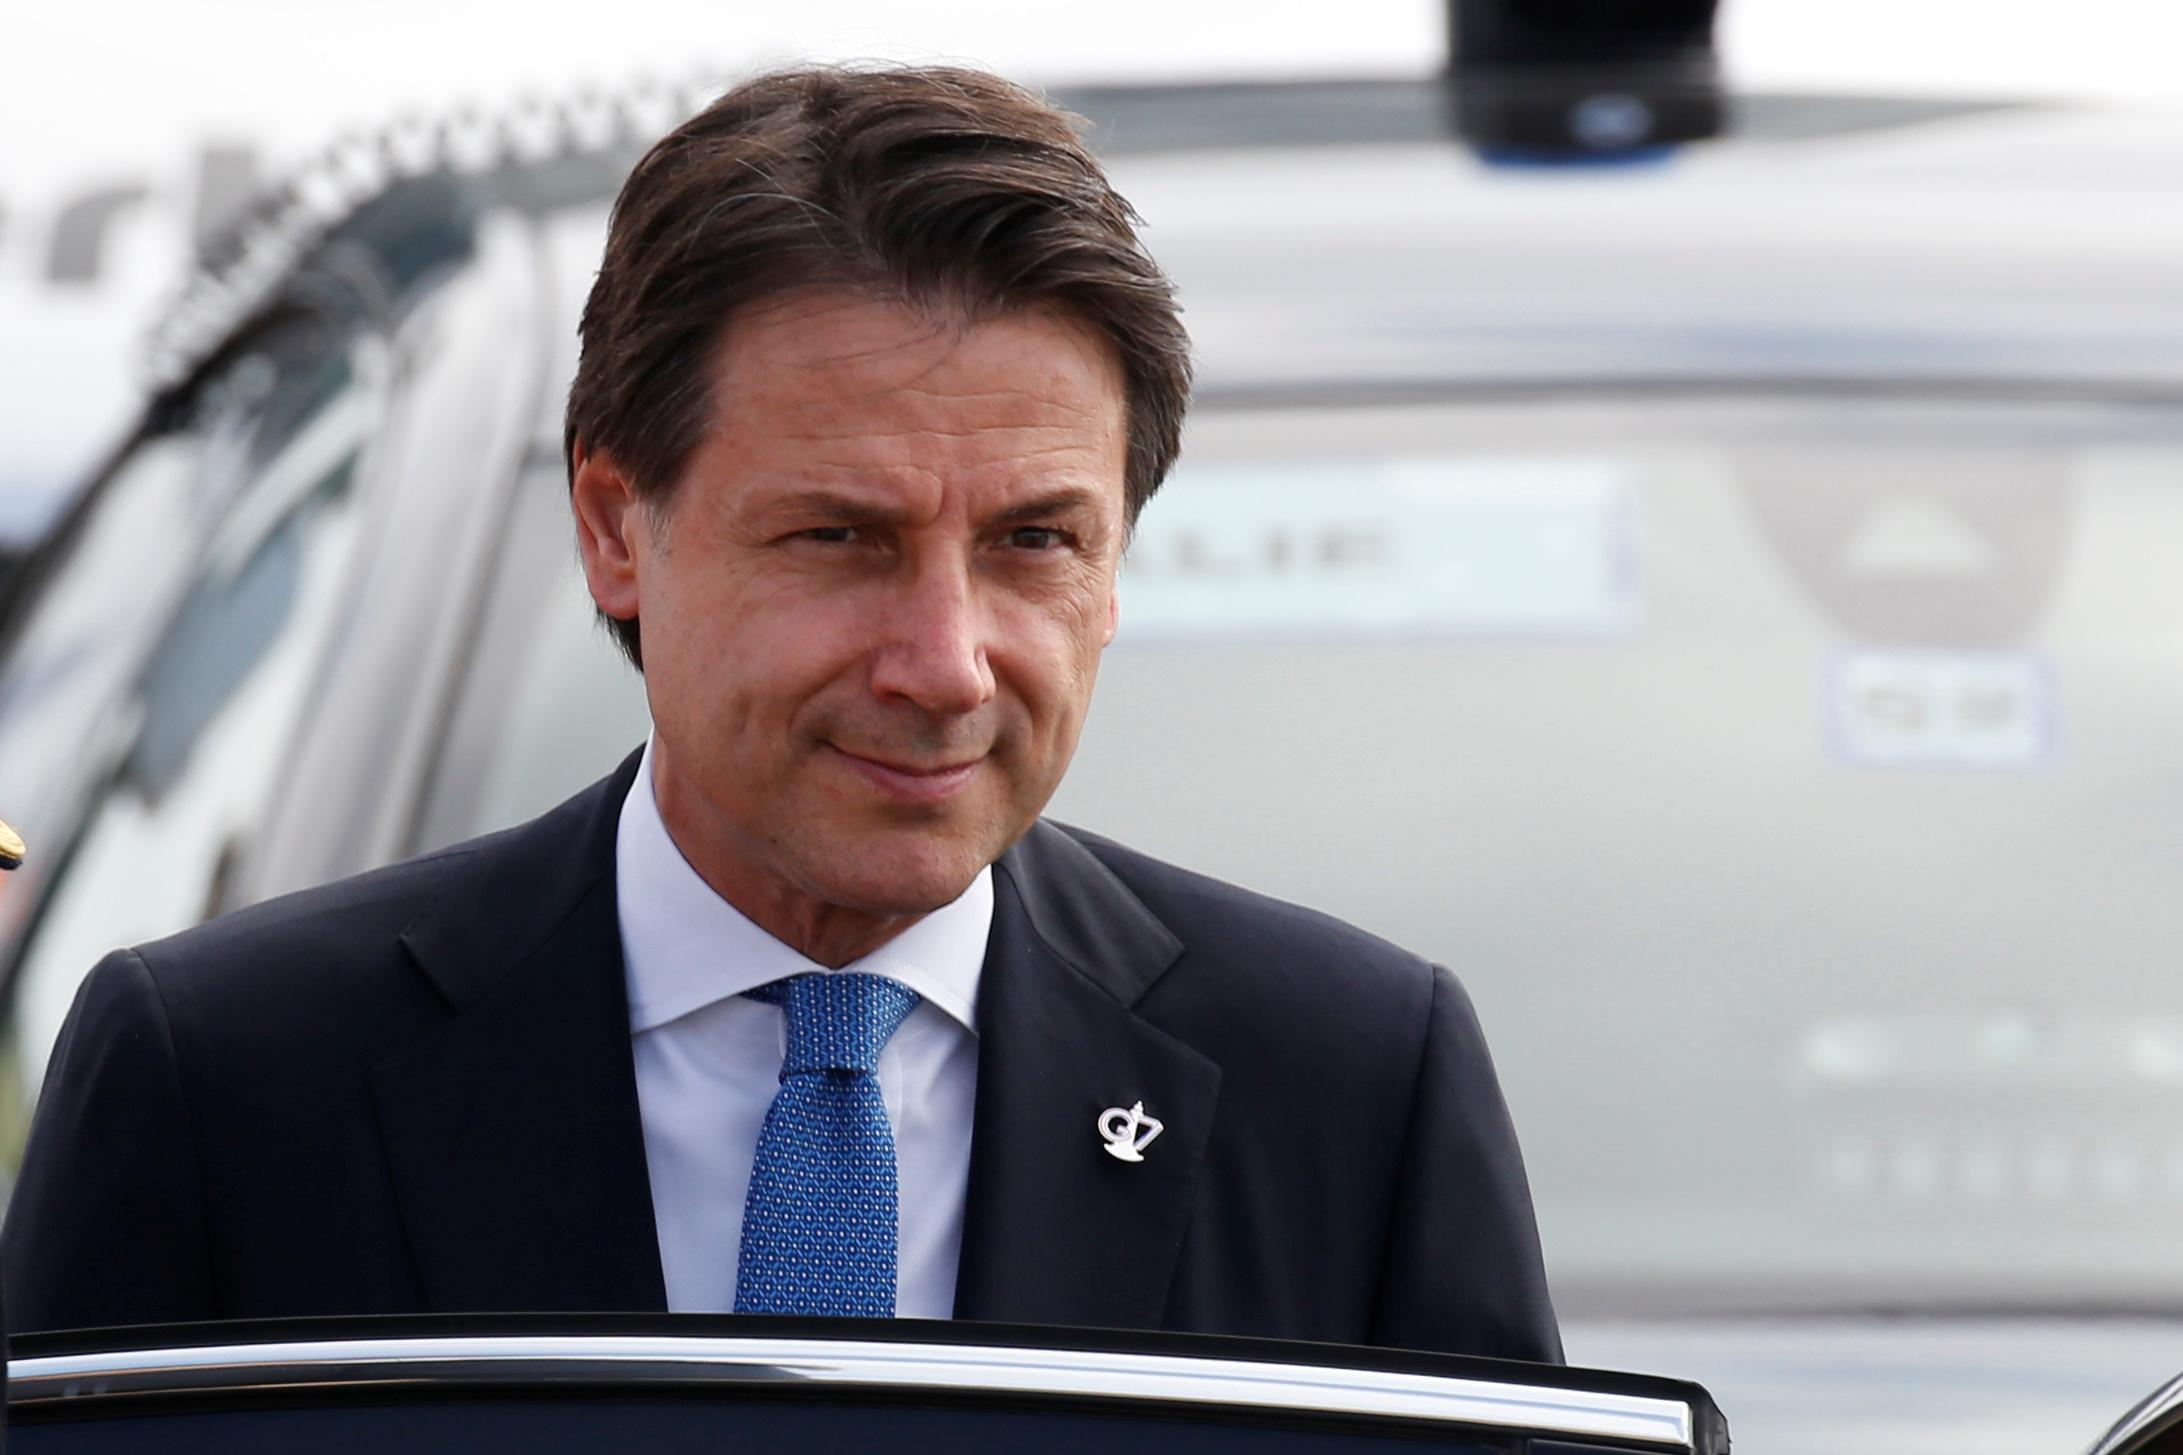 Italy warns G7 against protectionism, worried by U.S. tariff threat